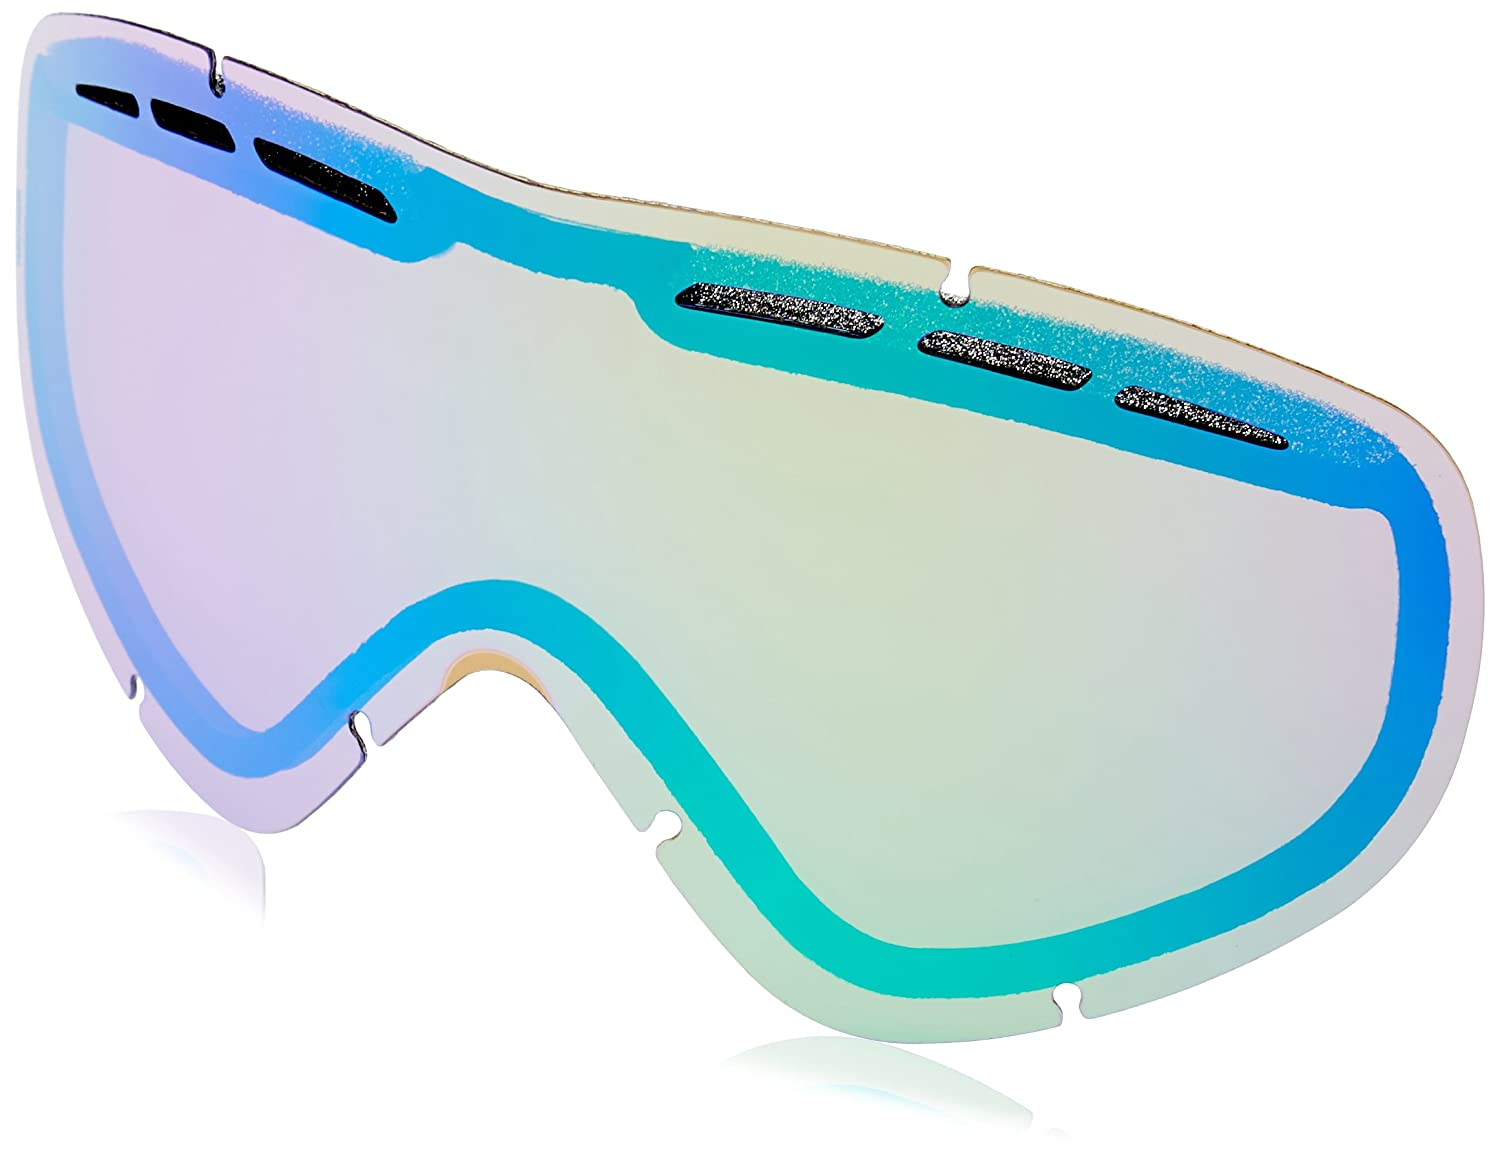 Green Emerald Greys Distribution Bolle 50592 Replacement Lenses Y6 OTG Sunglasses